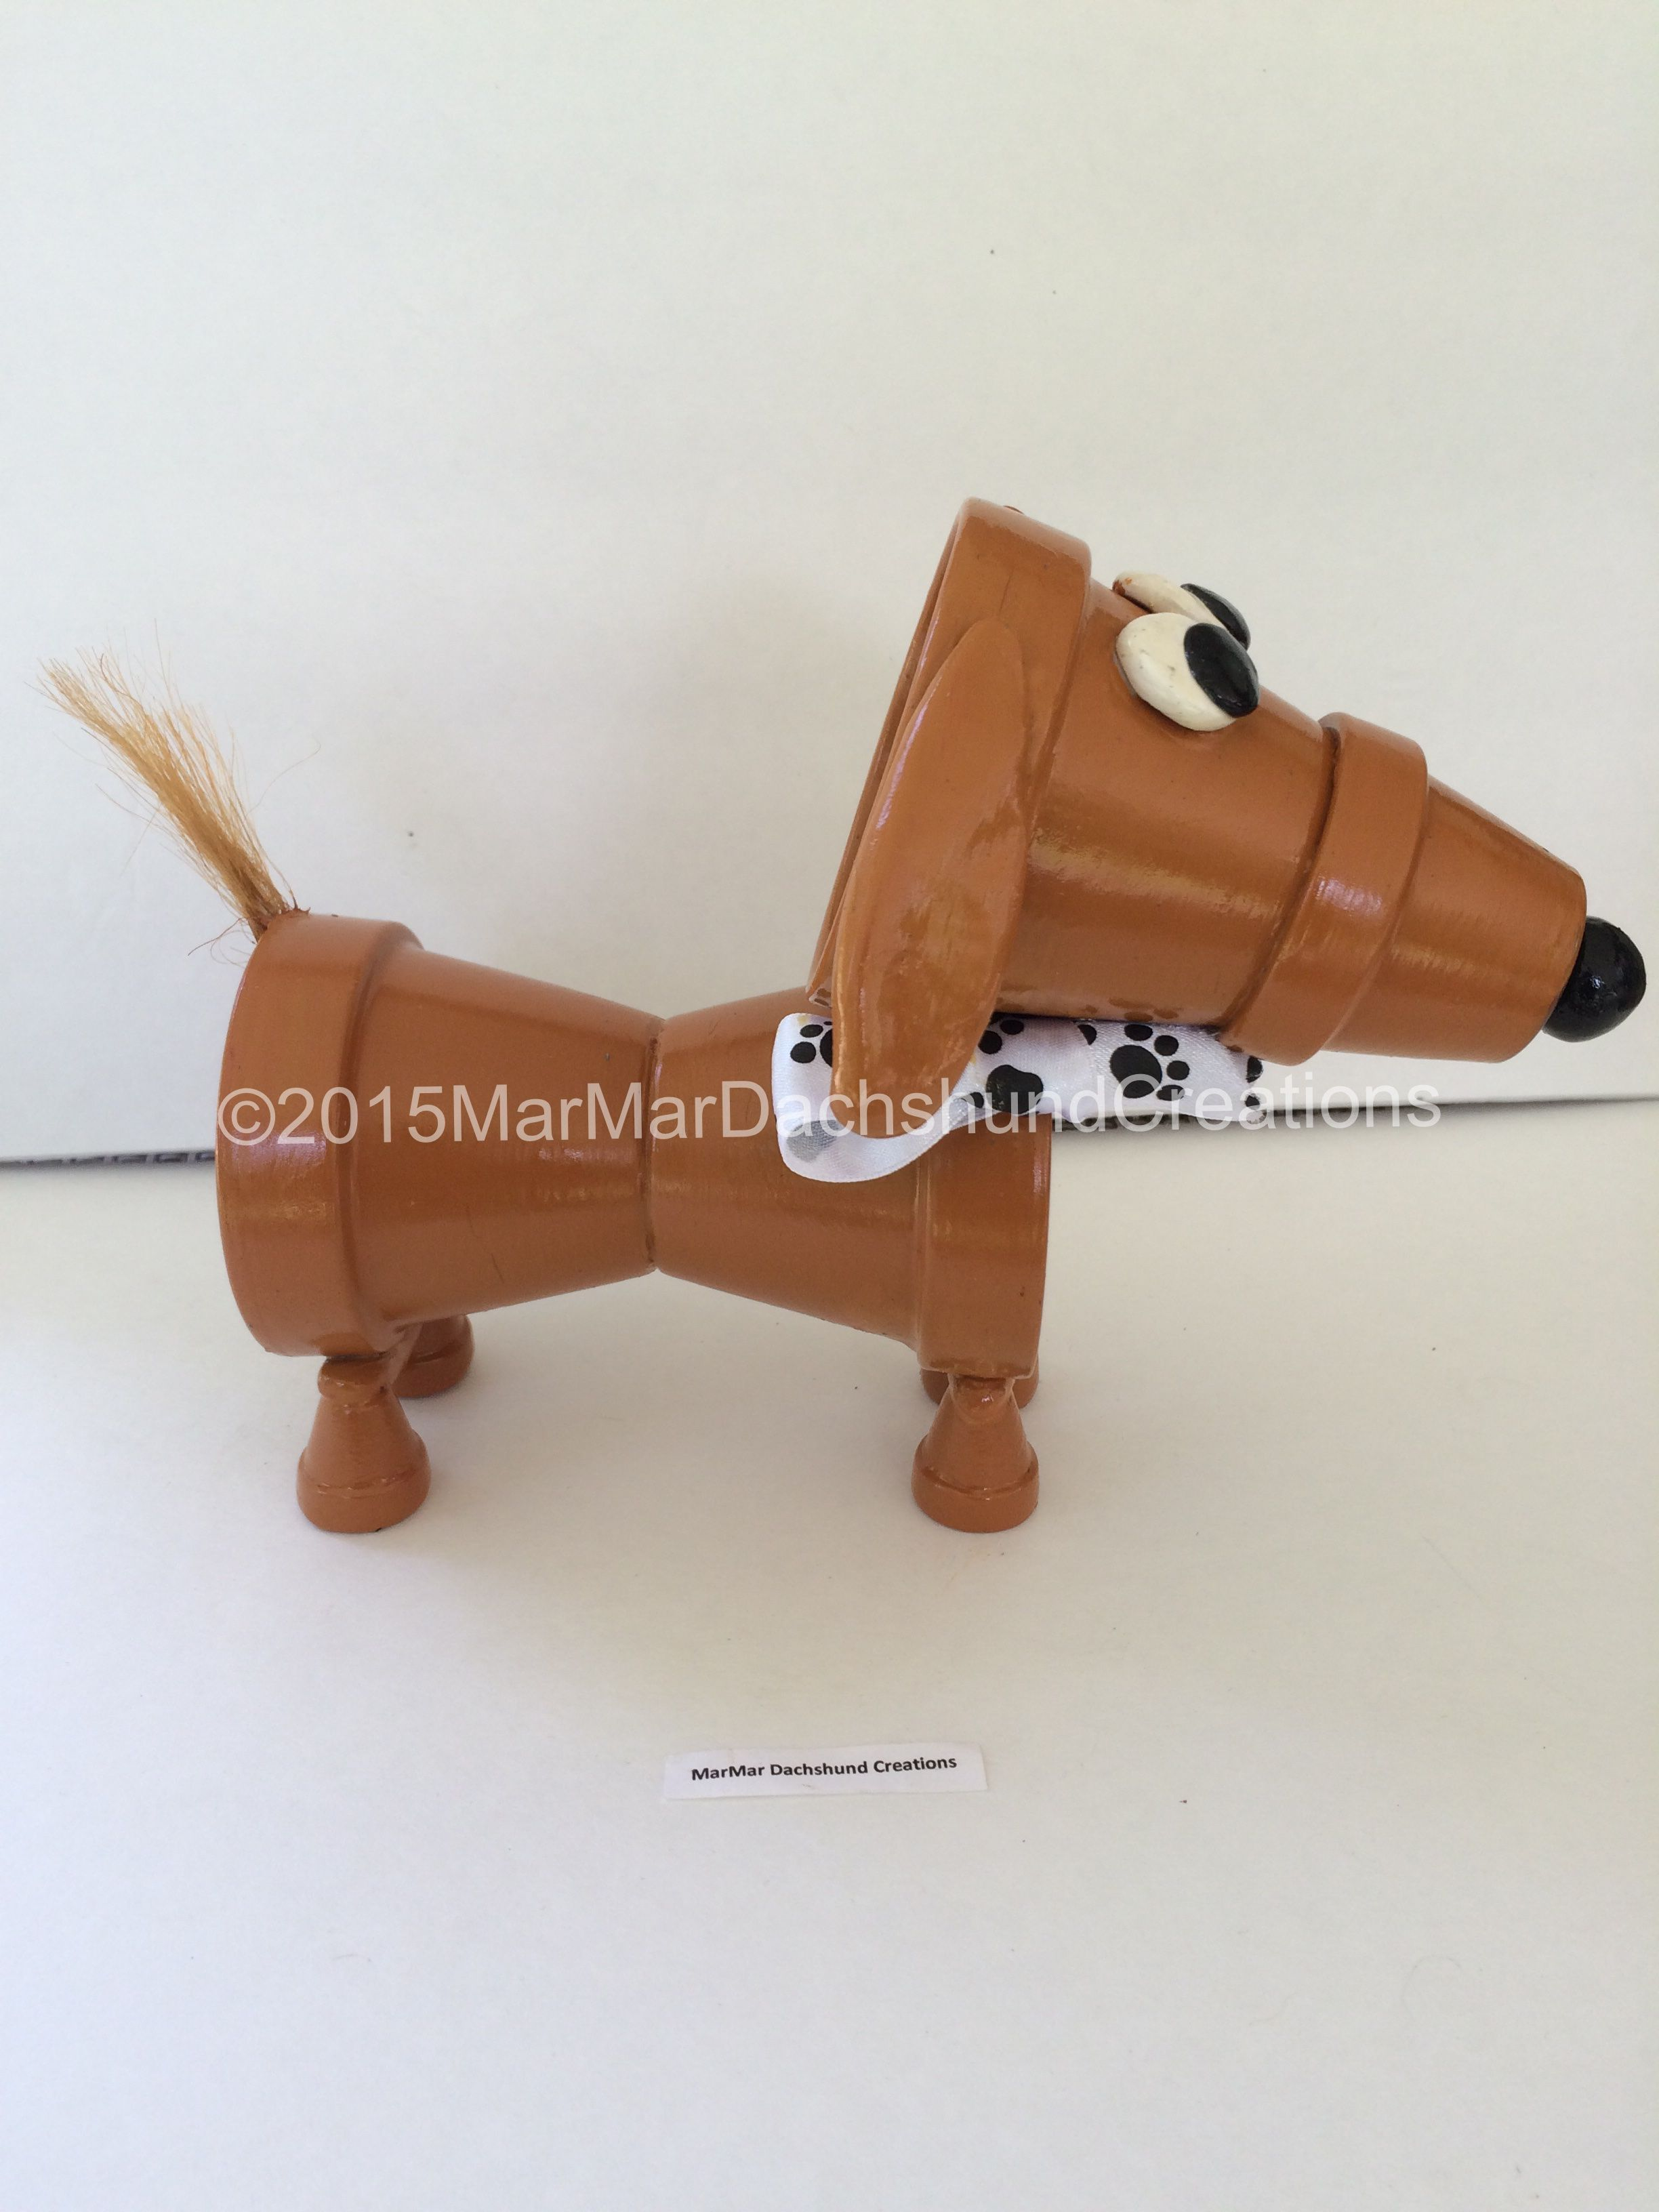 Small clay pots for crafts - Clay Pot Dog Dachshund